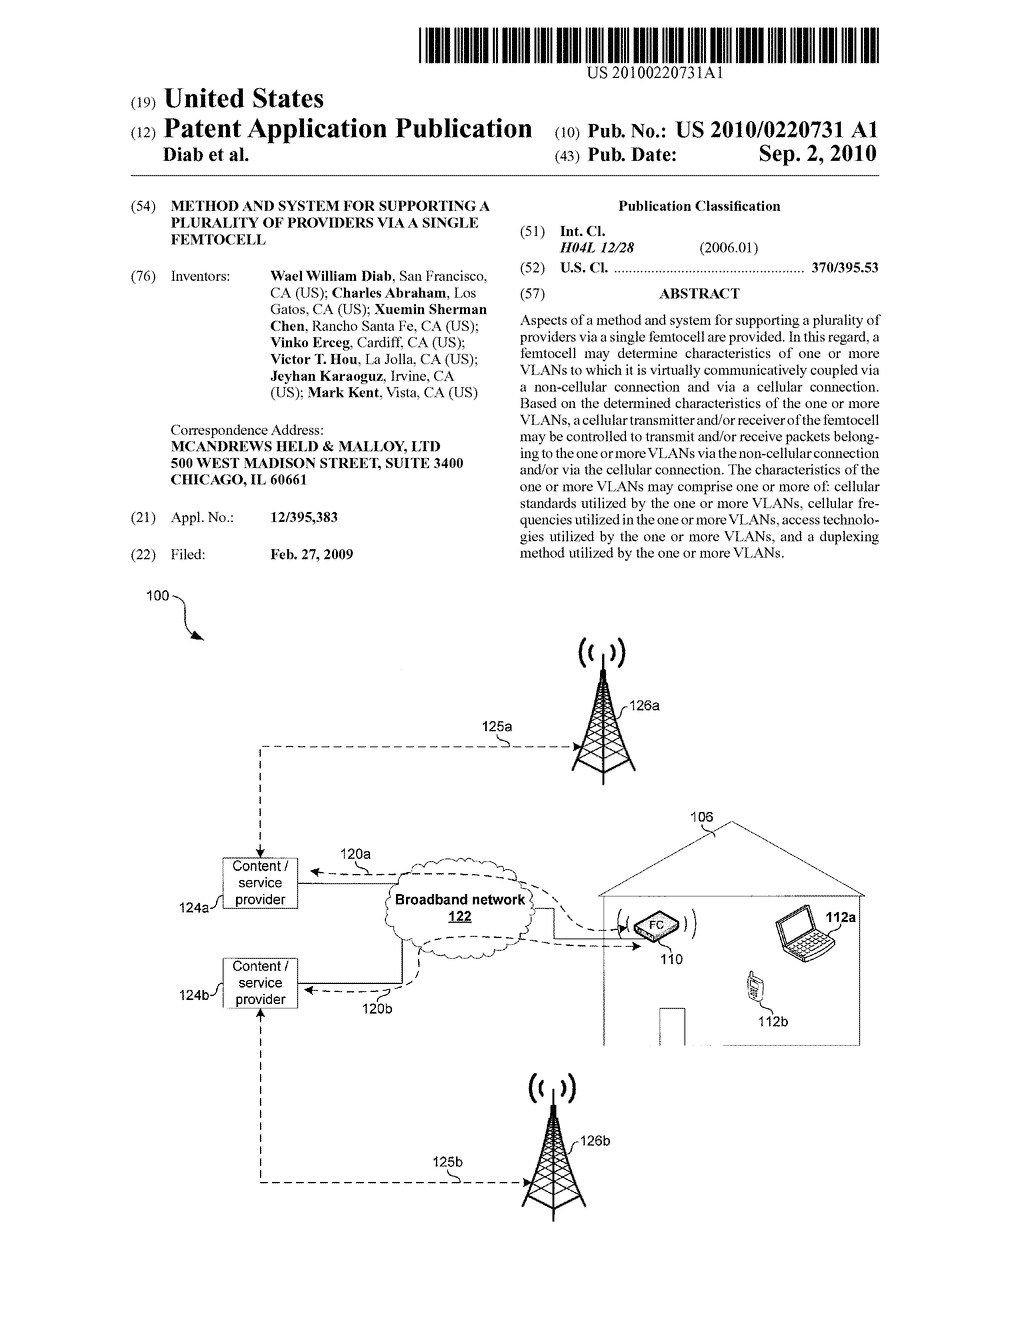 METHOD AND SYSTEM FOR SUPPORTING A PLURALITY OF PROVIDERS VIA A SINGLE FEMTOCELL - diagram, schematic, and image 01